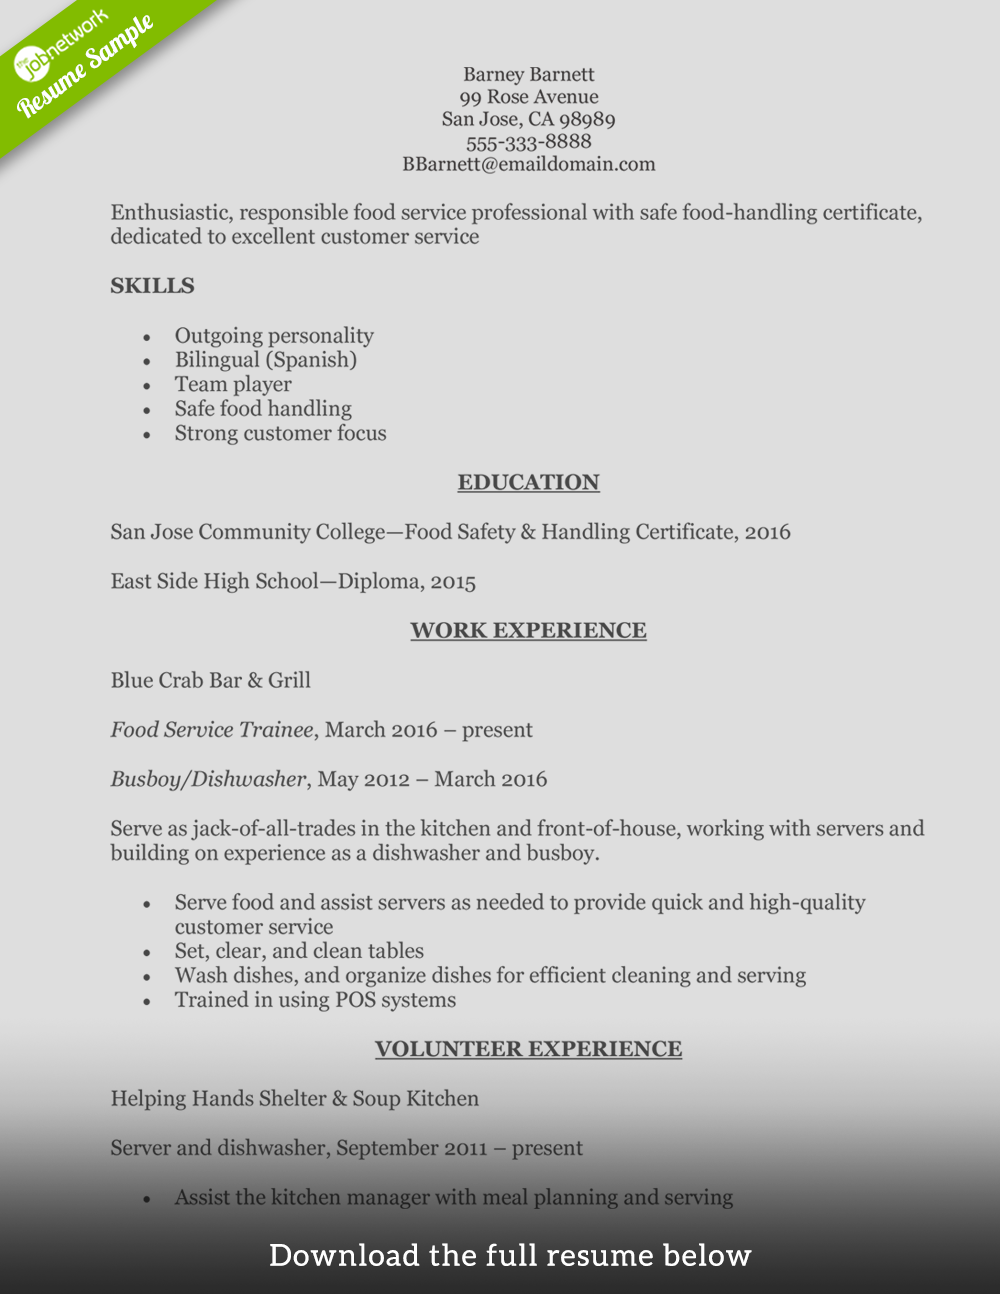 Attractive Food Service Resume Entry Level  Food Service Resume